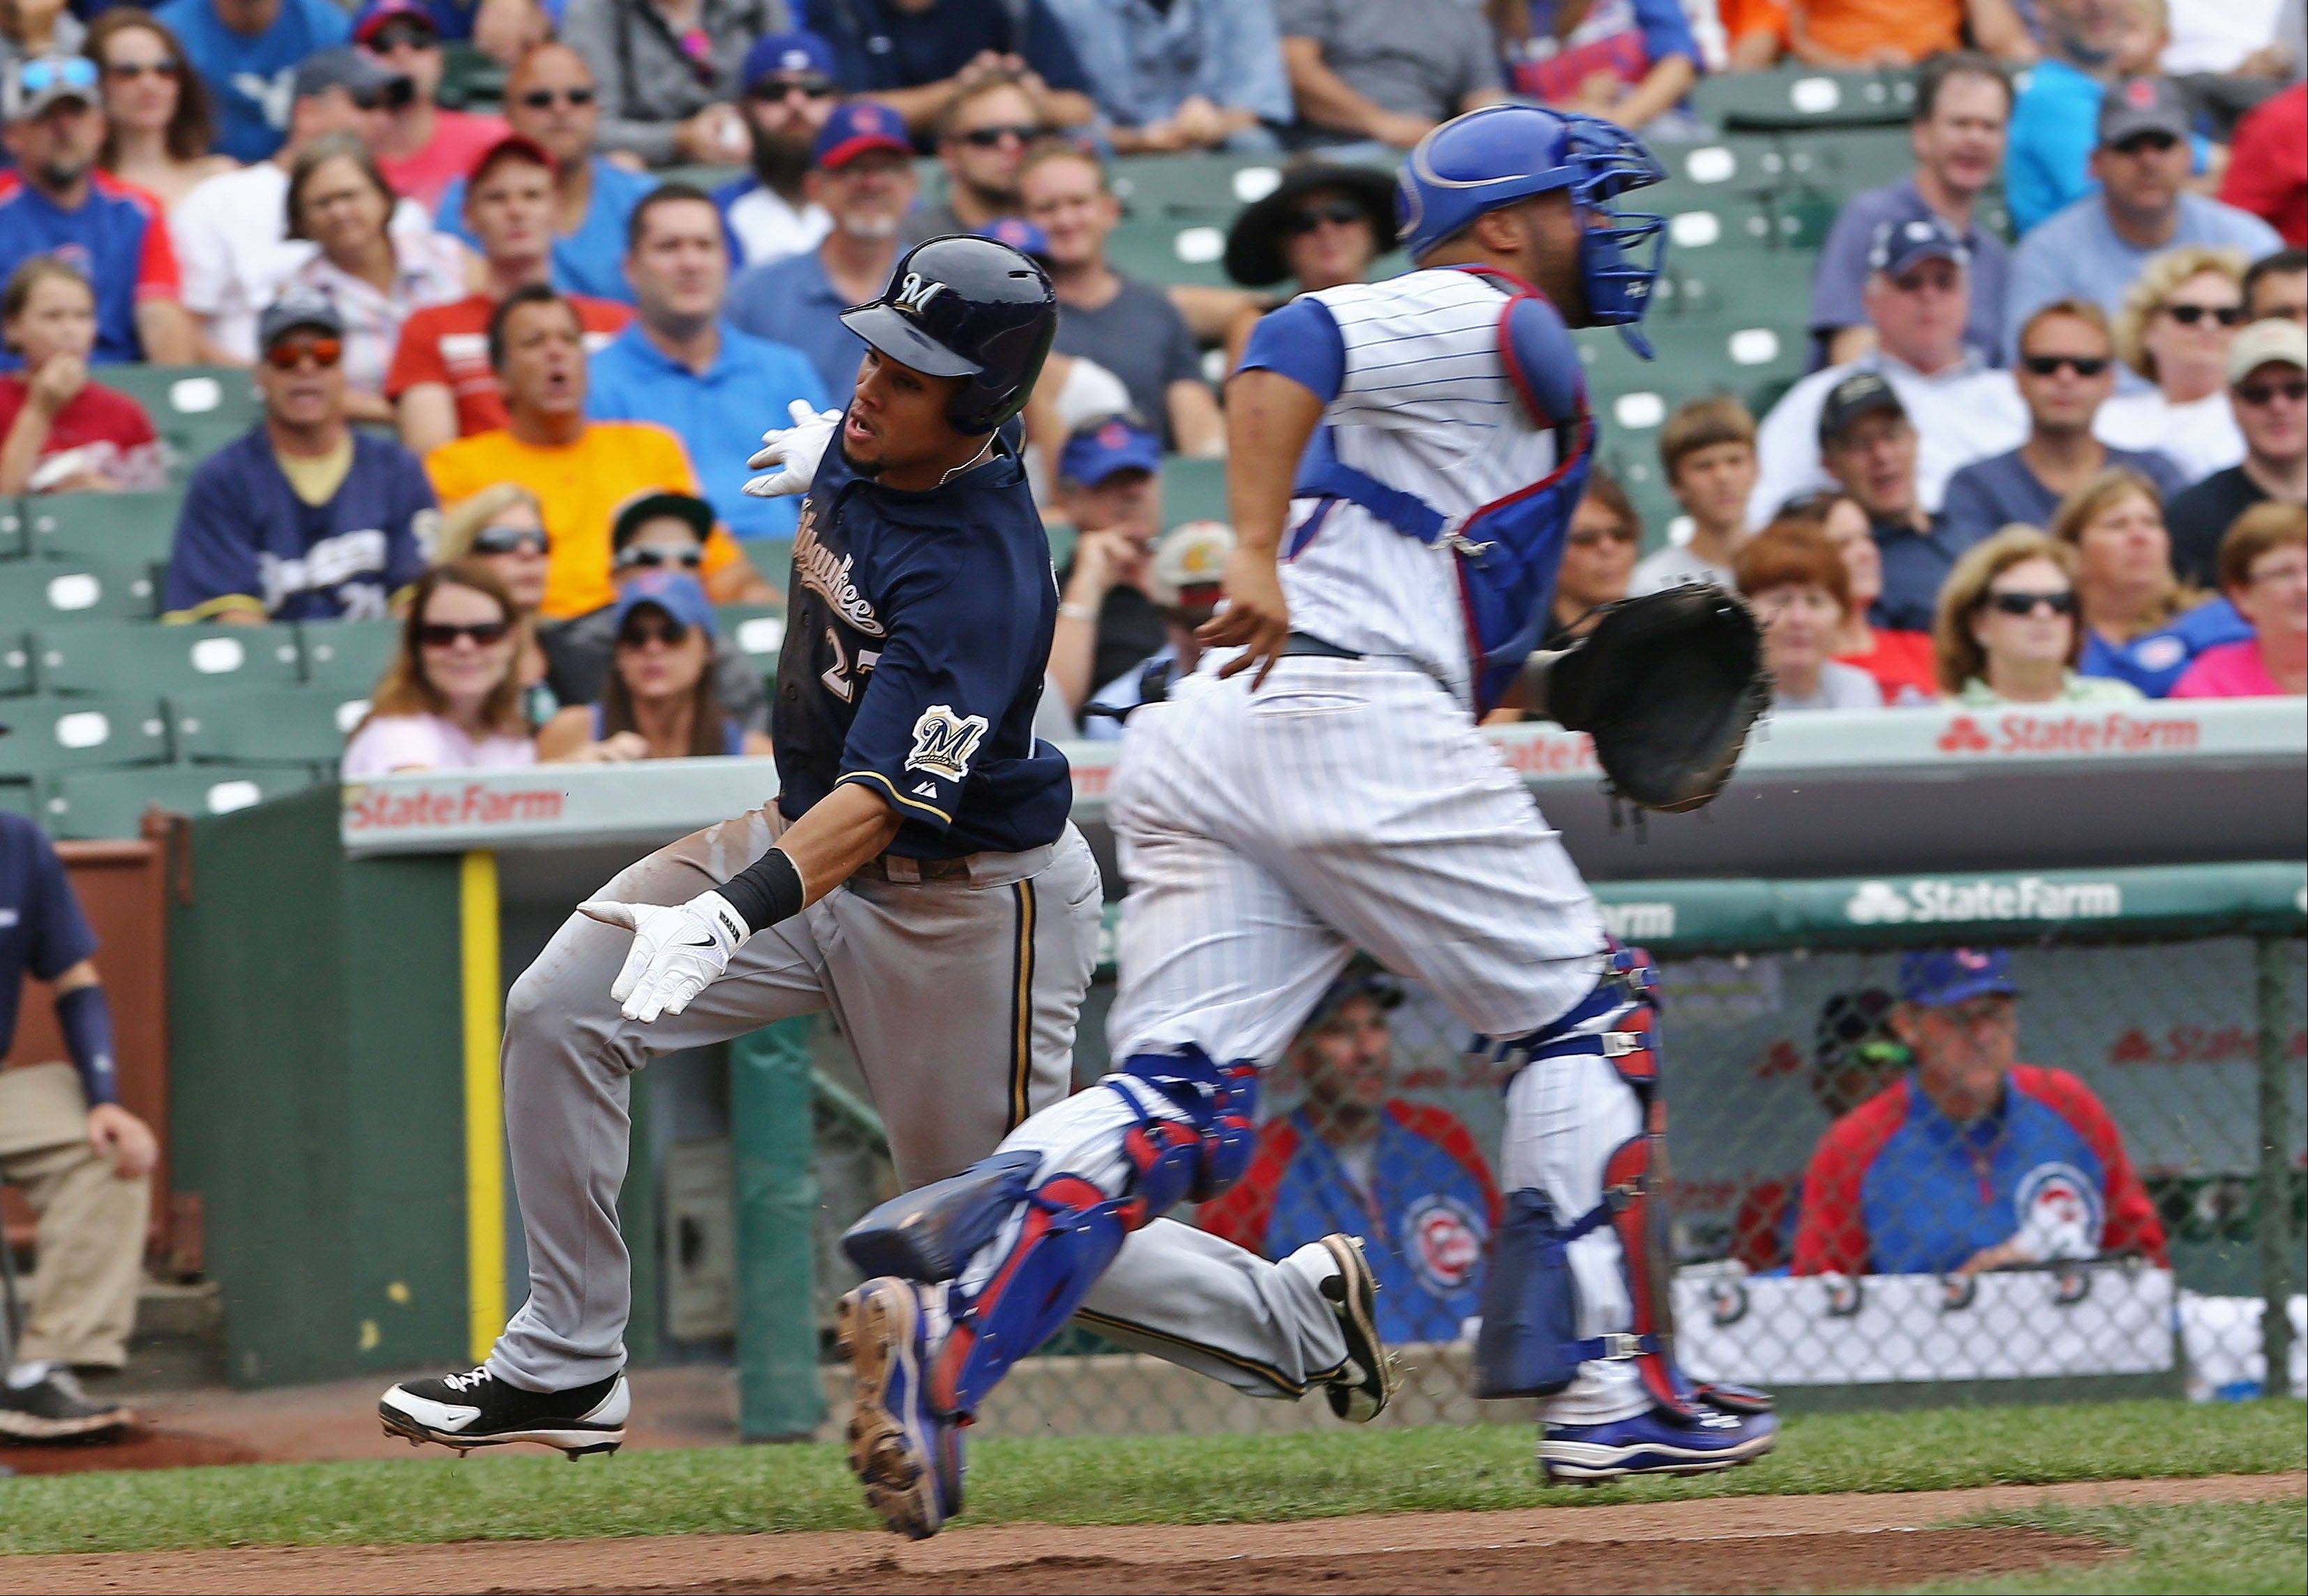 Milwaukee Brewers' Carlos Gomez slides past Chicago Cubs catcher Wellington Castillo to score in the seventh inning during a baseball game in Chicago on Sunday, Sept. 8, 2013.